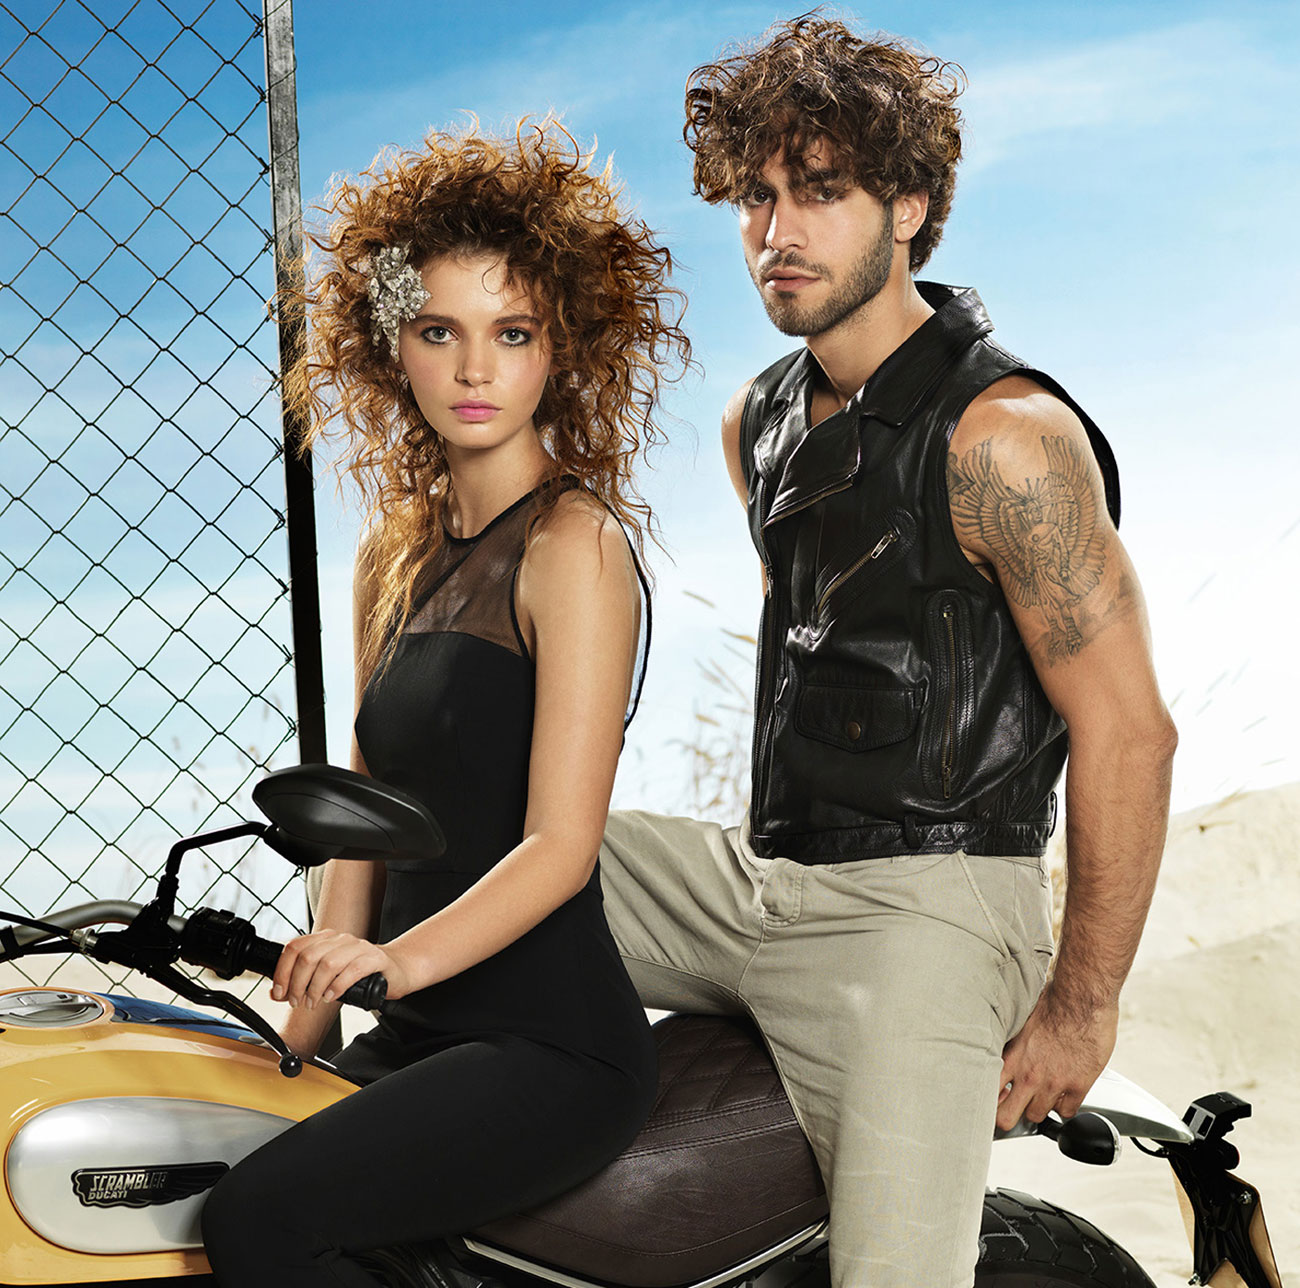 So Smart So Cool – Collezione Spring / Summer 2016 mitu wella | Danys Fashion Parrucchieri Carpi Modena